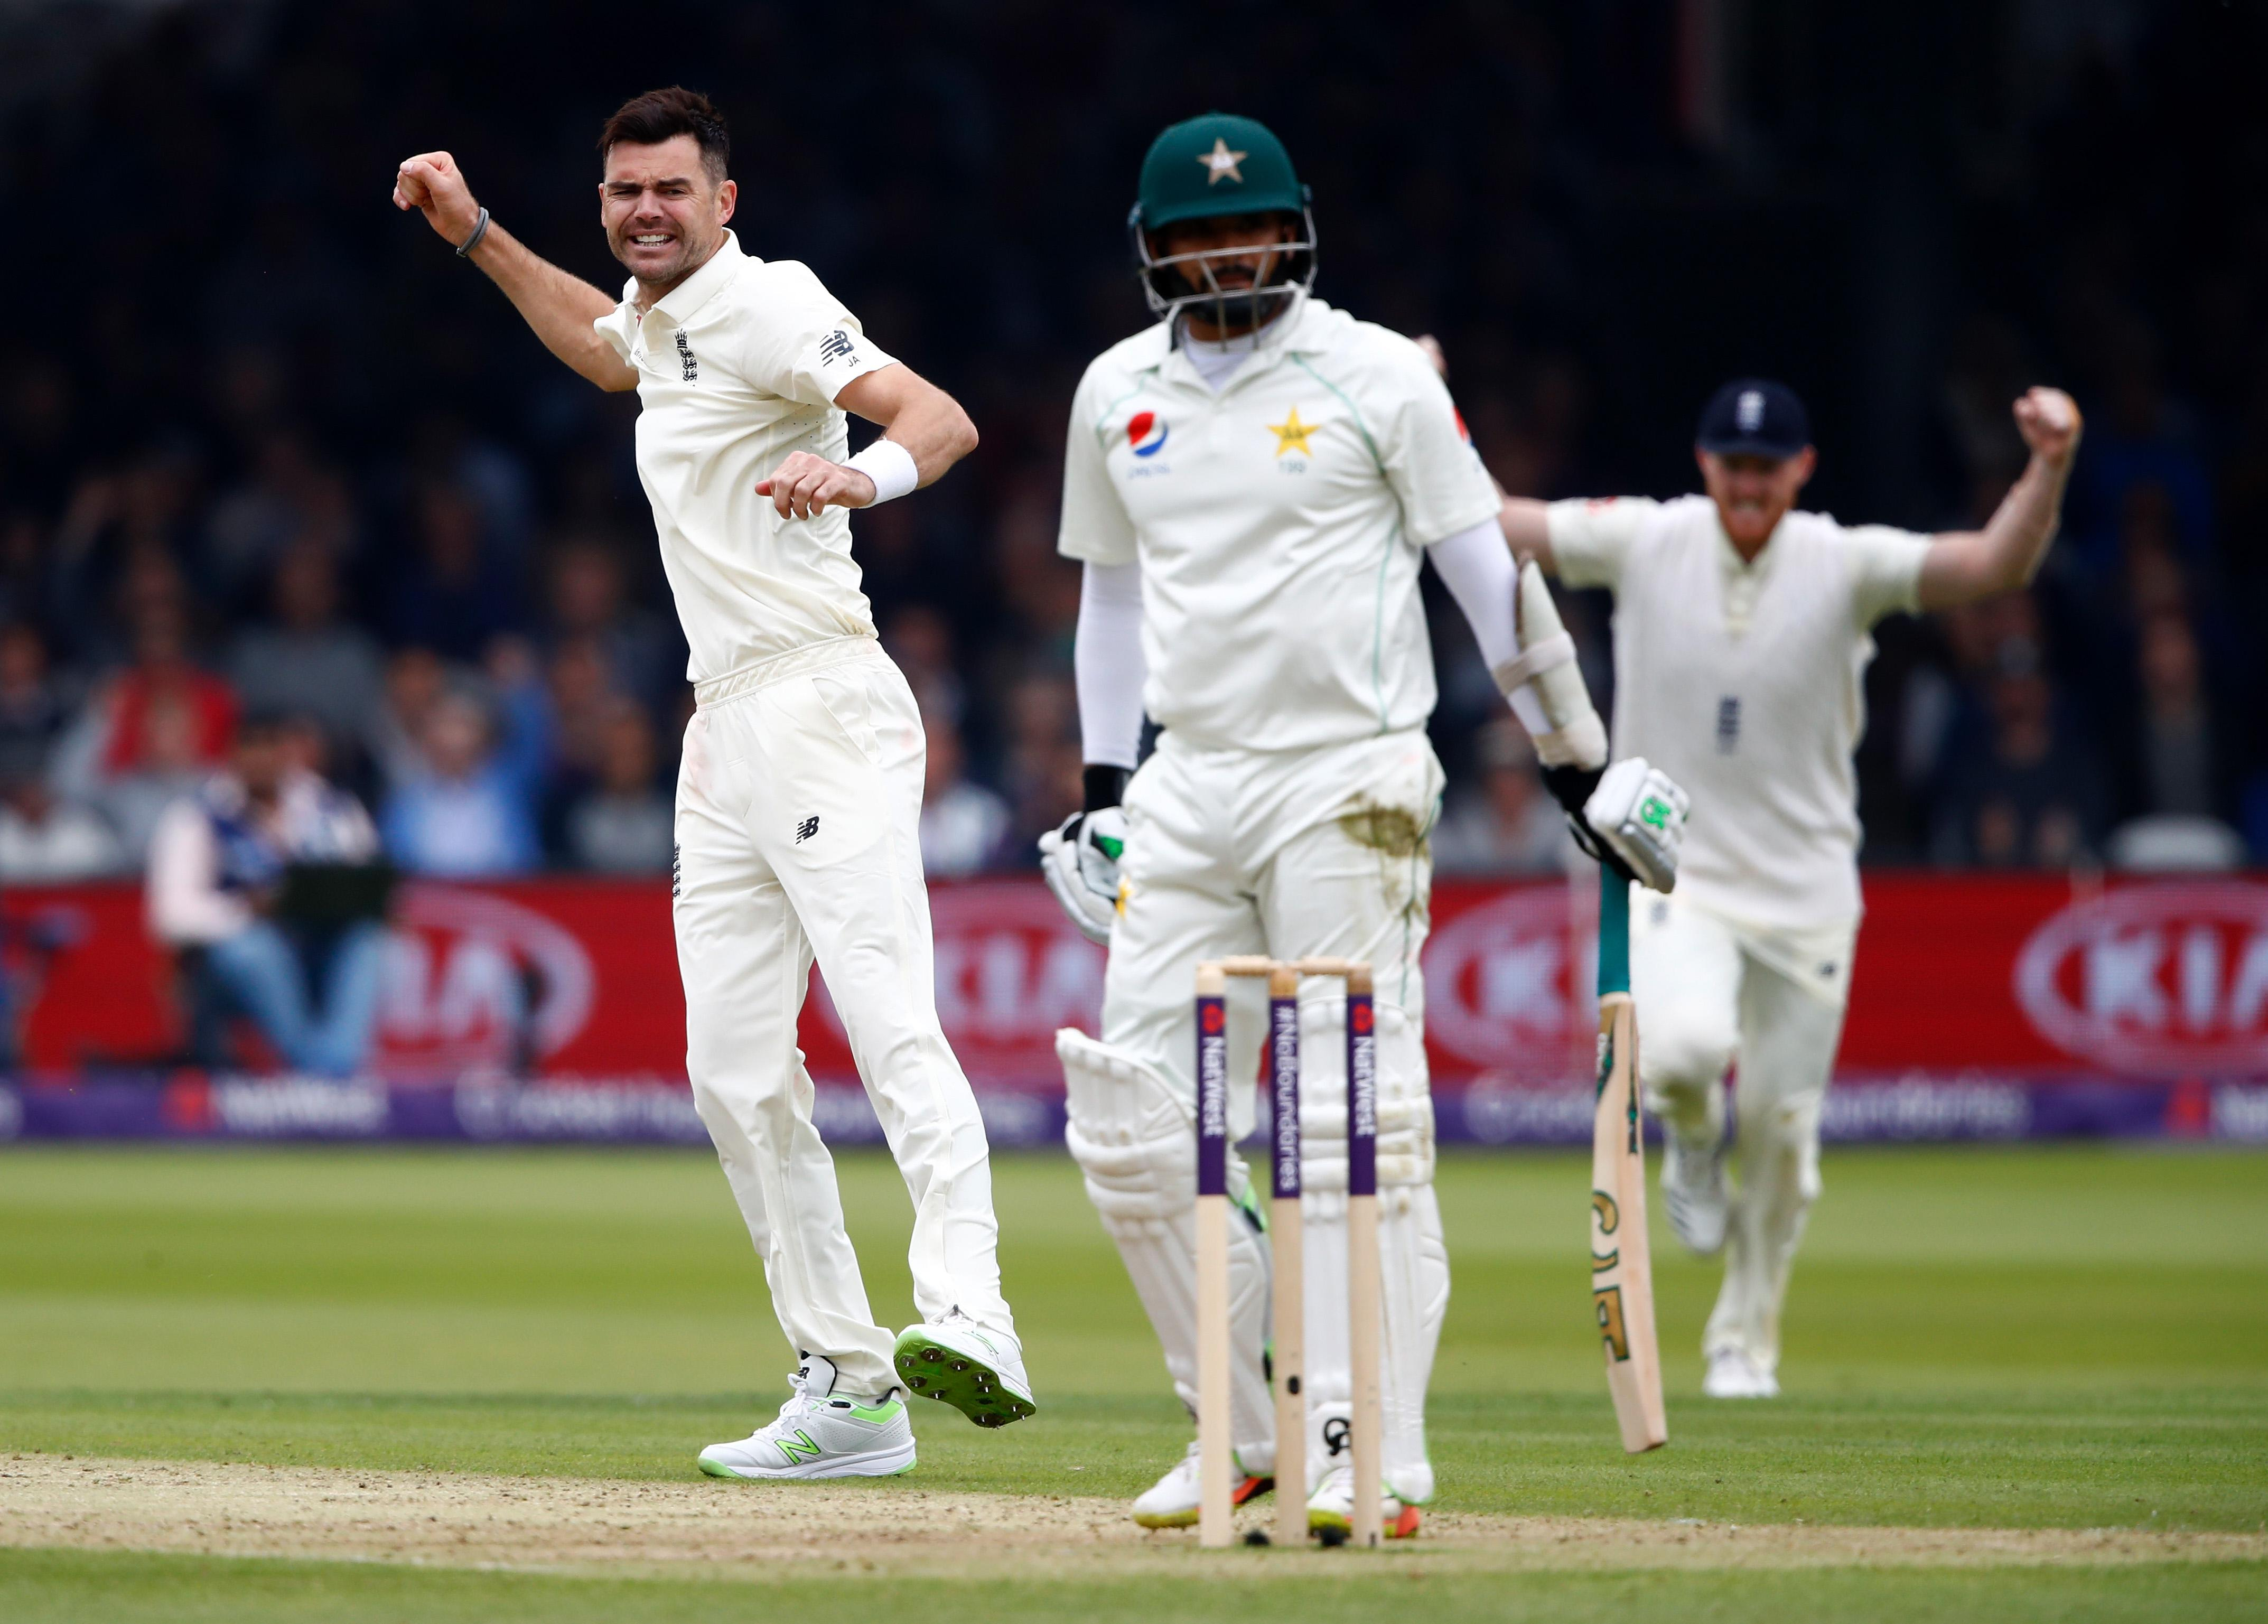 Jimmy Anderson took three wickets on day two